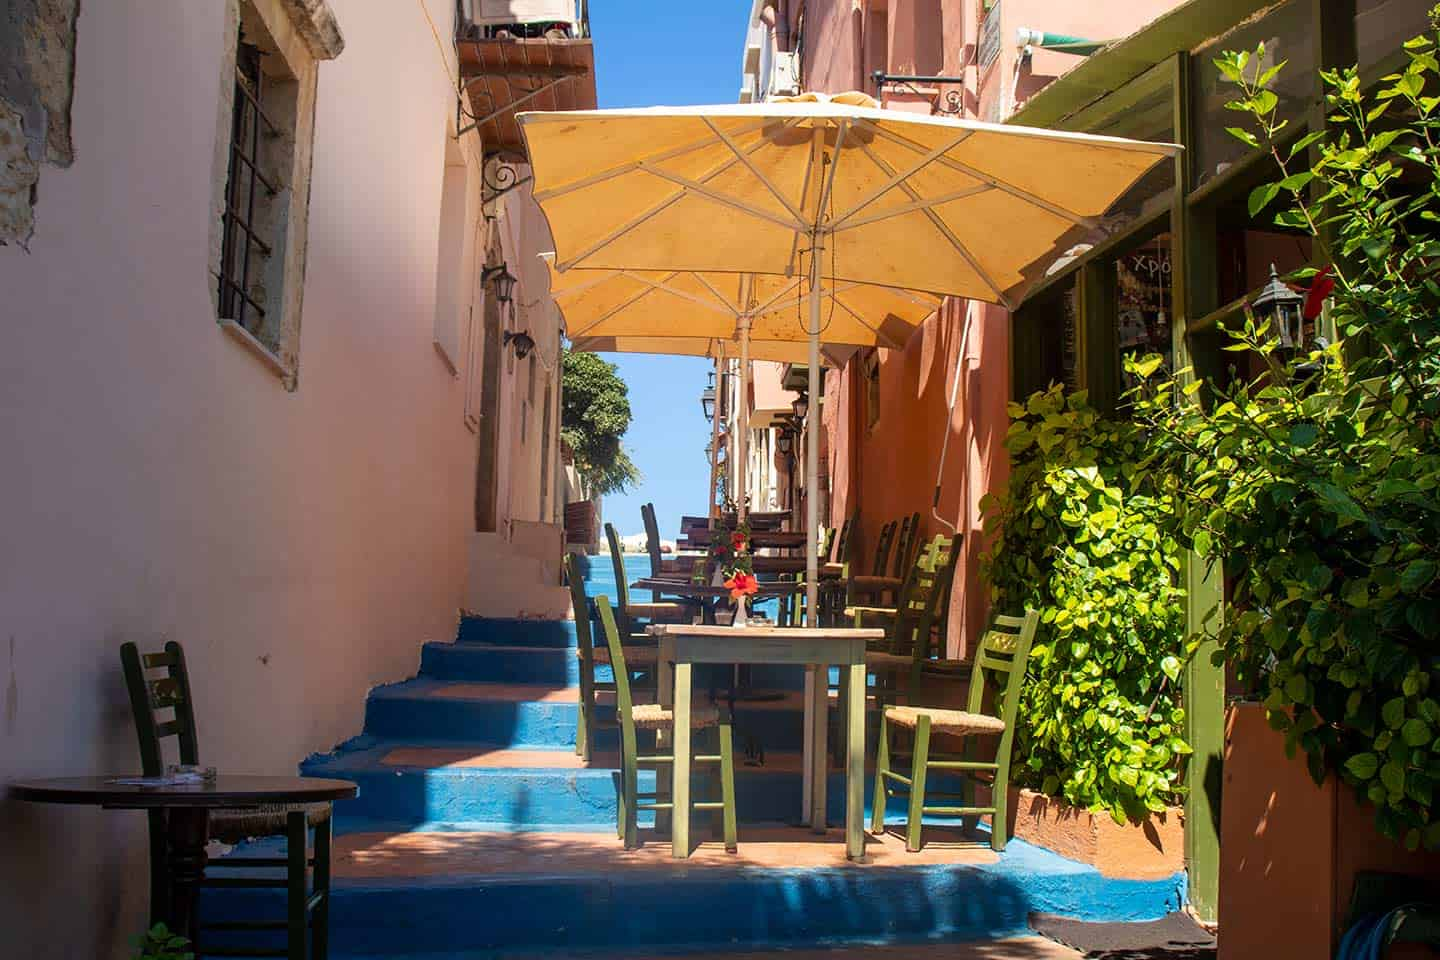 Image of the blue steps of Rethymno